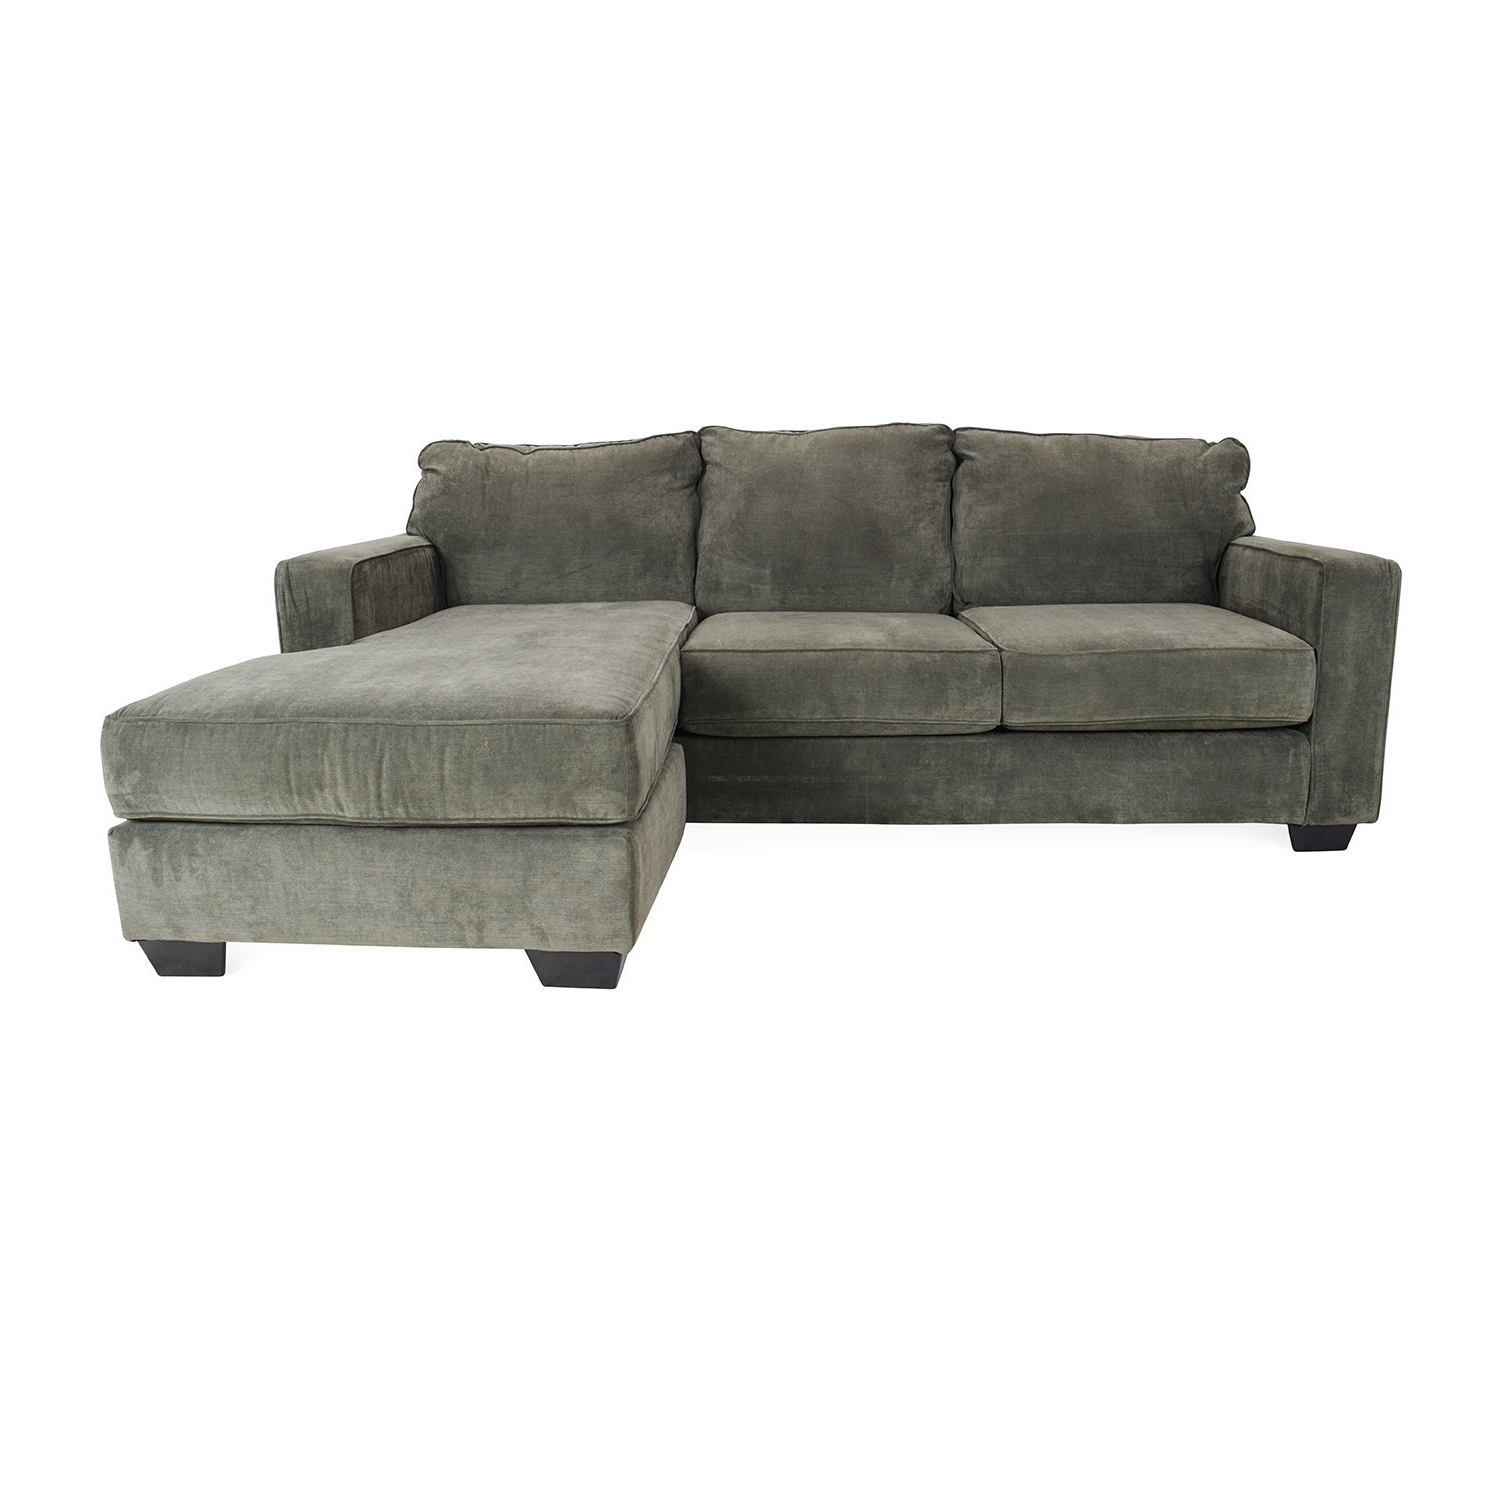 [%54% Off – Jennifer Convertibles Jennifer Convertibles Sectional Intended For Latest Jennifer Sofas|Jennifer Sofas Inside Widely Used 54% Off – Jennifer Convertibles Jennifer Convertibles Sectional|Well Liked Jennifer Sofas Pertaining To 54% Off – Jennifer Convertibles Jennifer Convertibles Sectional|Favorite 54% Off – Jennifer Convertibles Jennifer Convertibles Sectional With Jennifer Sofas%] (View 9 of 15)